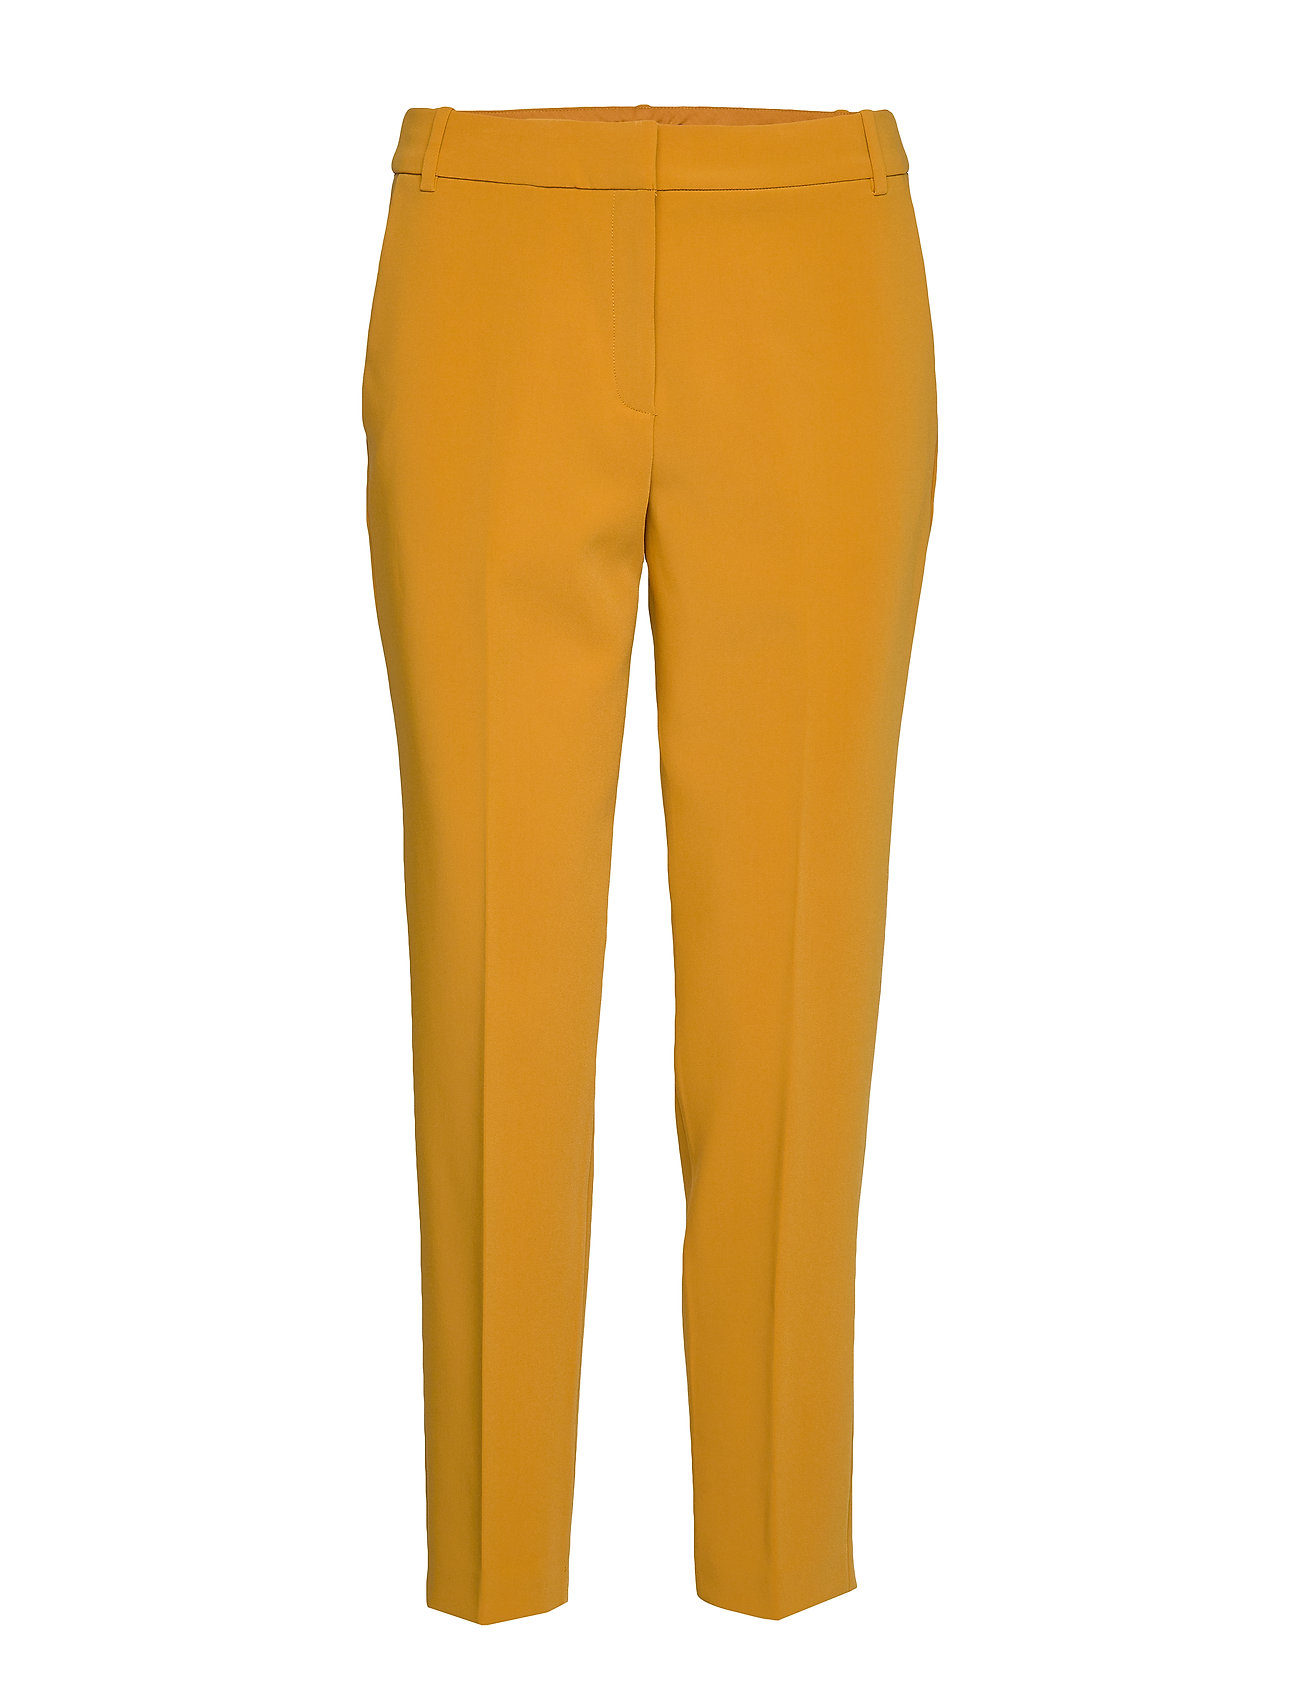 Esprit Collection Pants woven - AMBER YELLOW